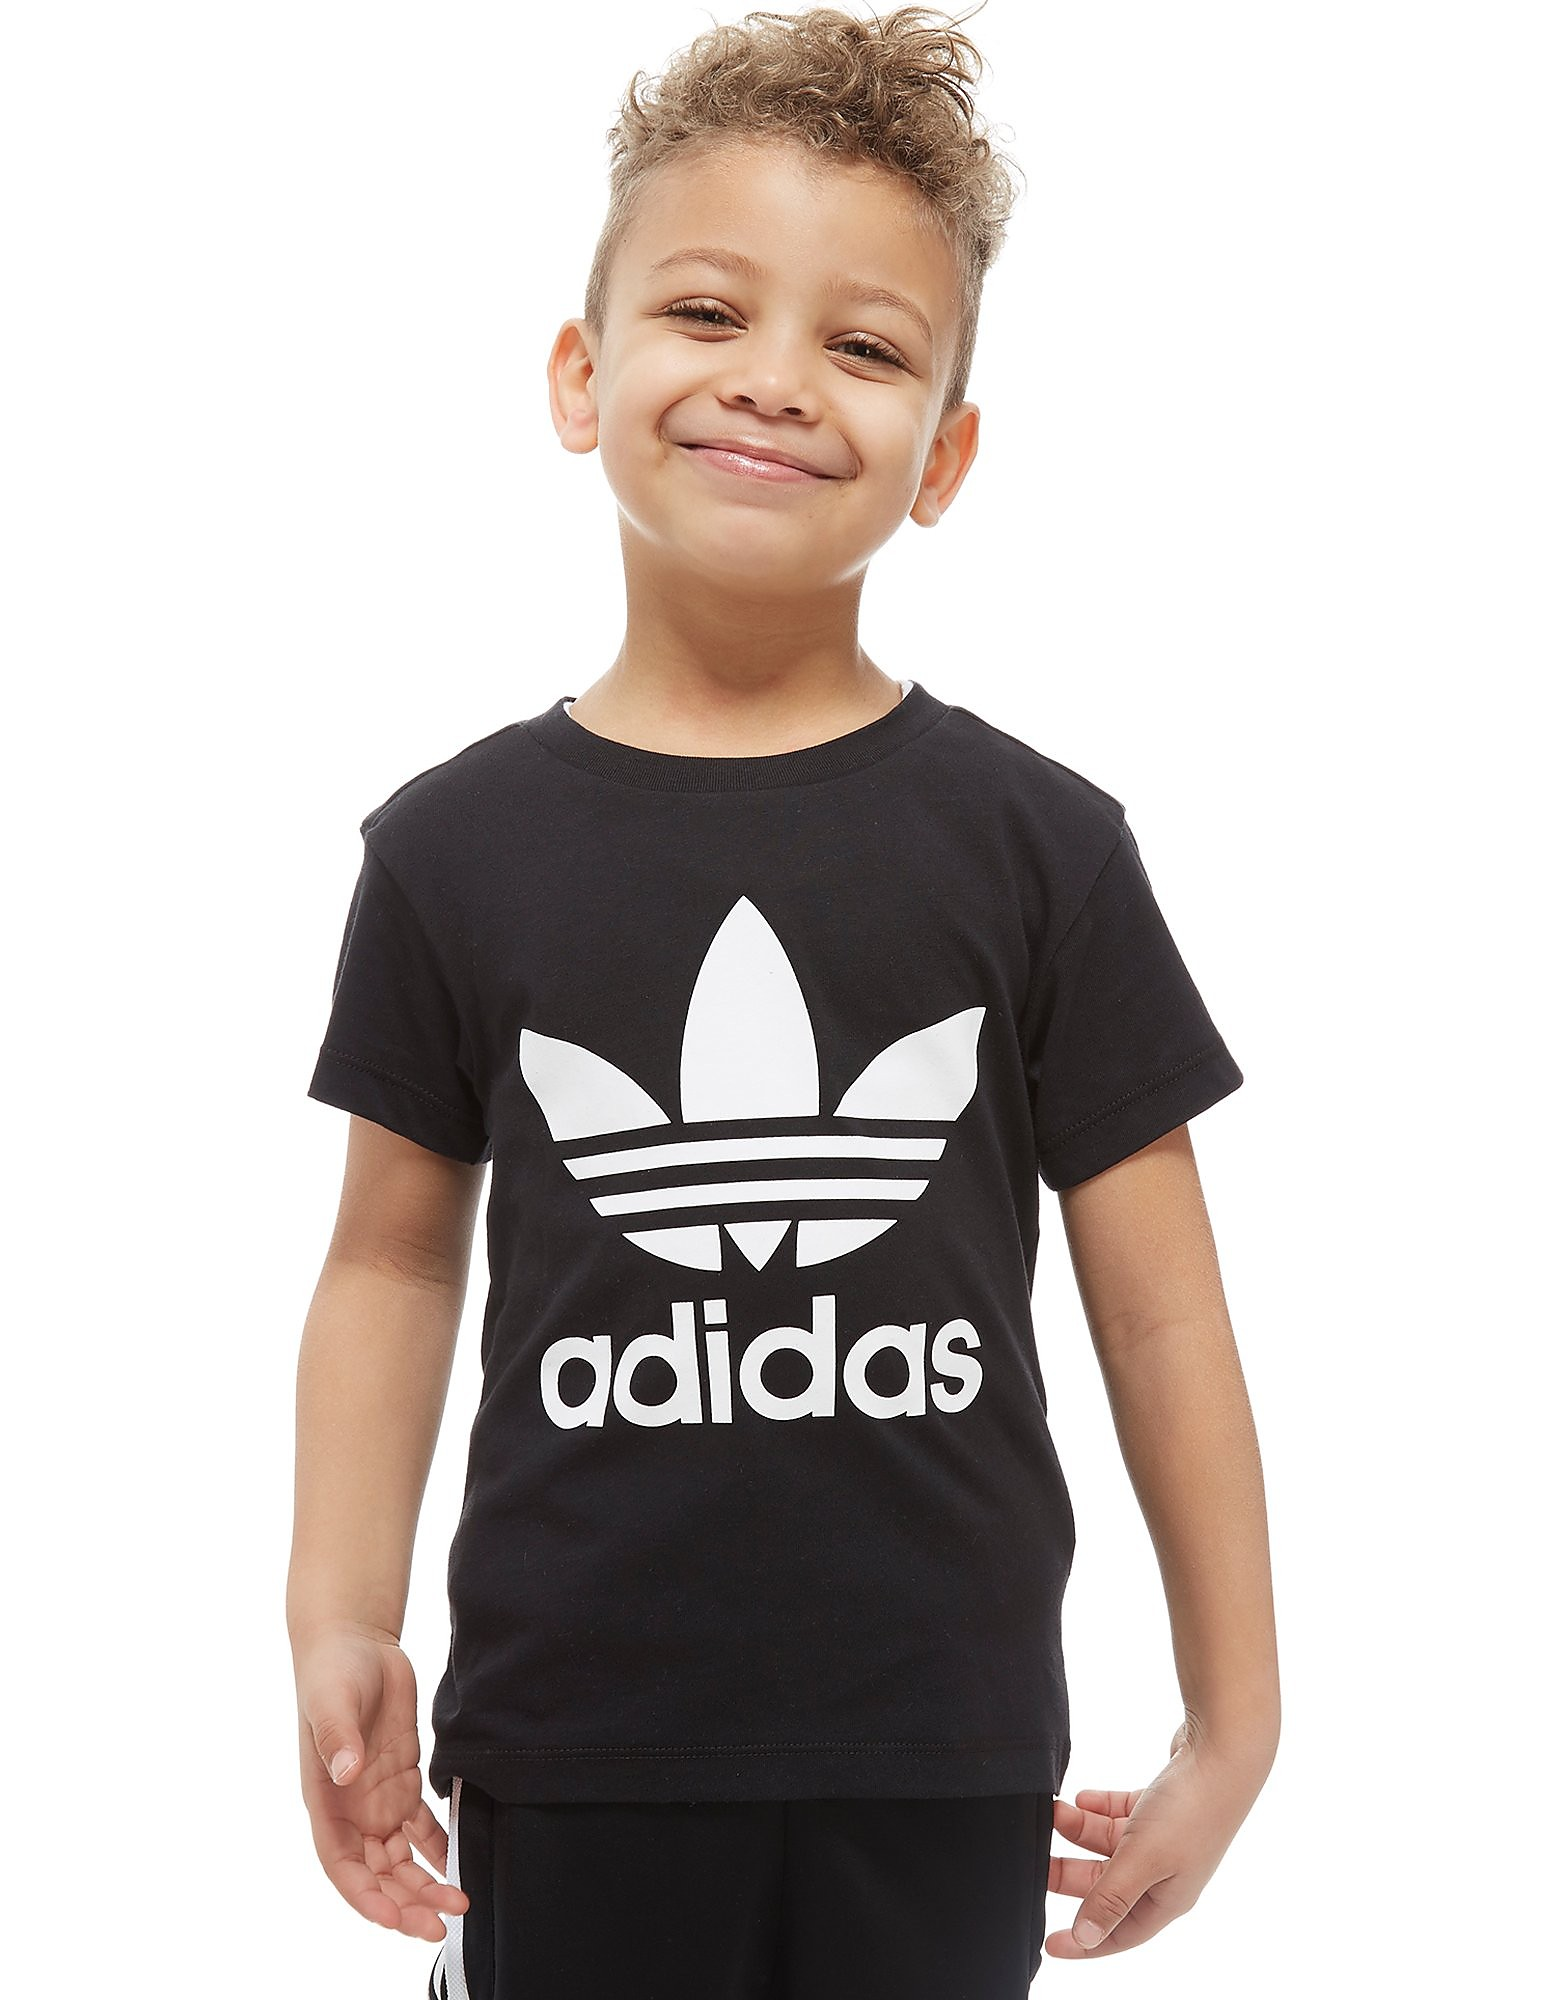 adidas Originals Trefoil T-Shirt Children